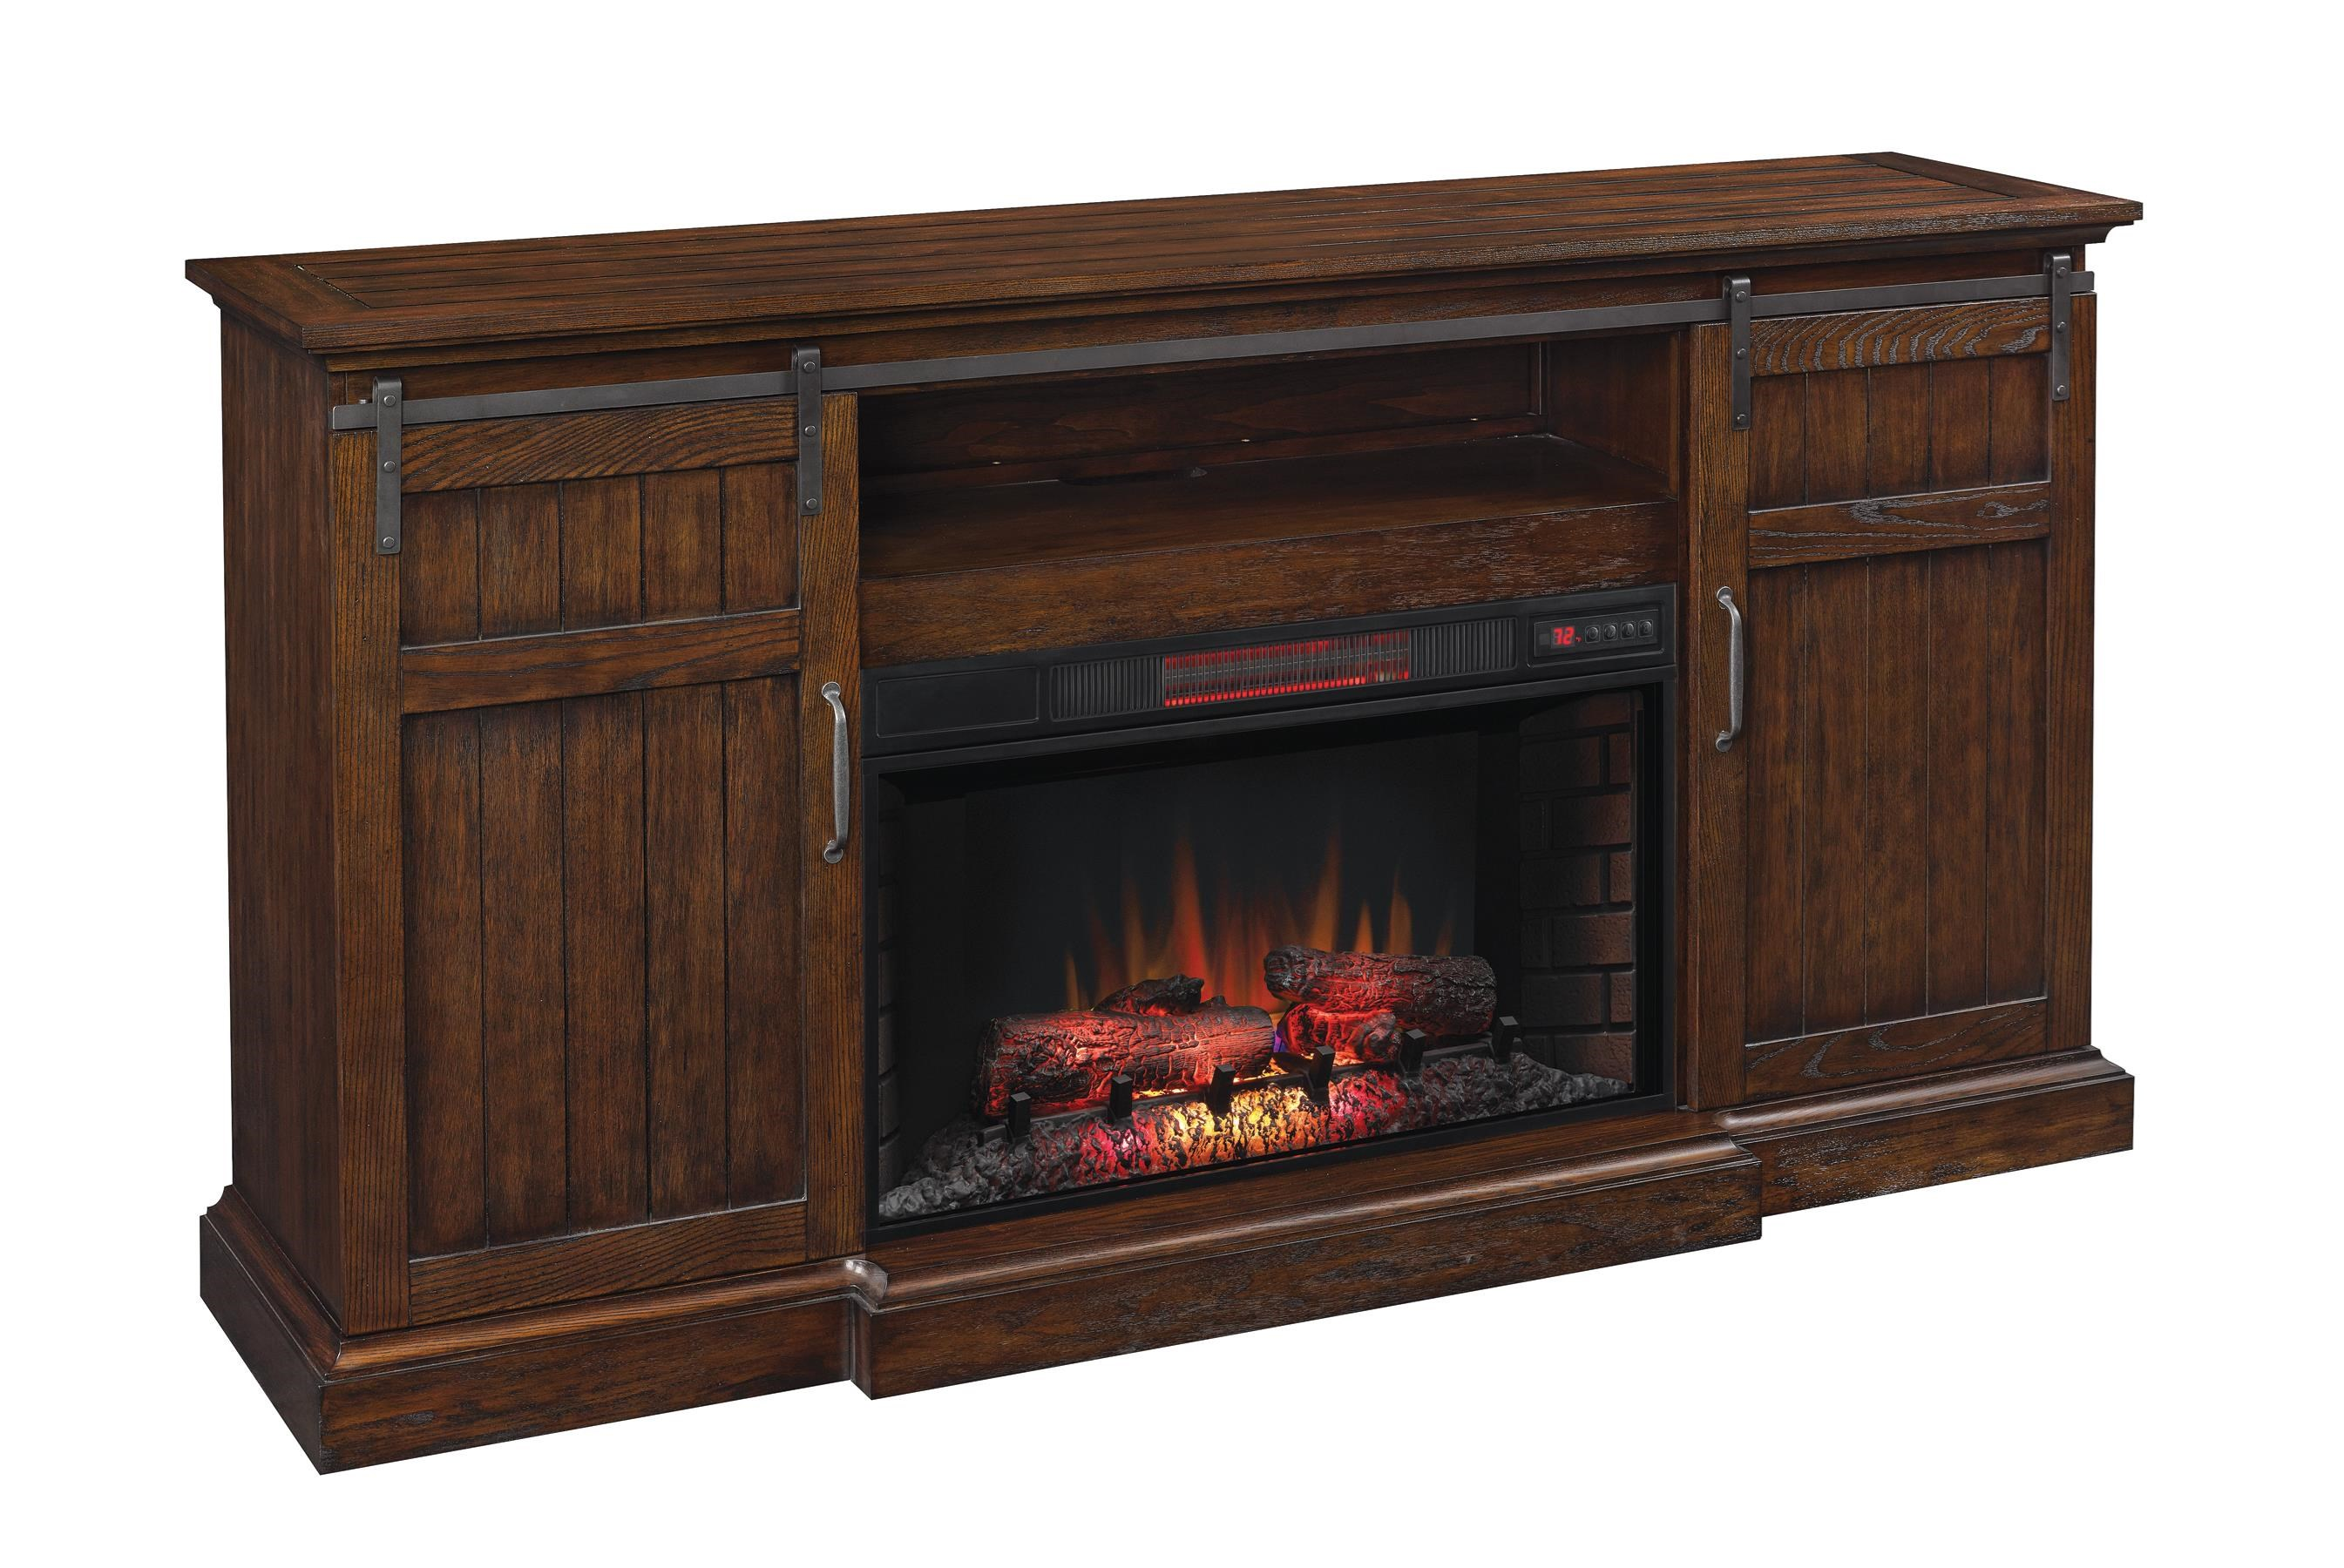 fireplace howden cape console glass log dimplex media gas electric embers cod guys inch